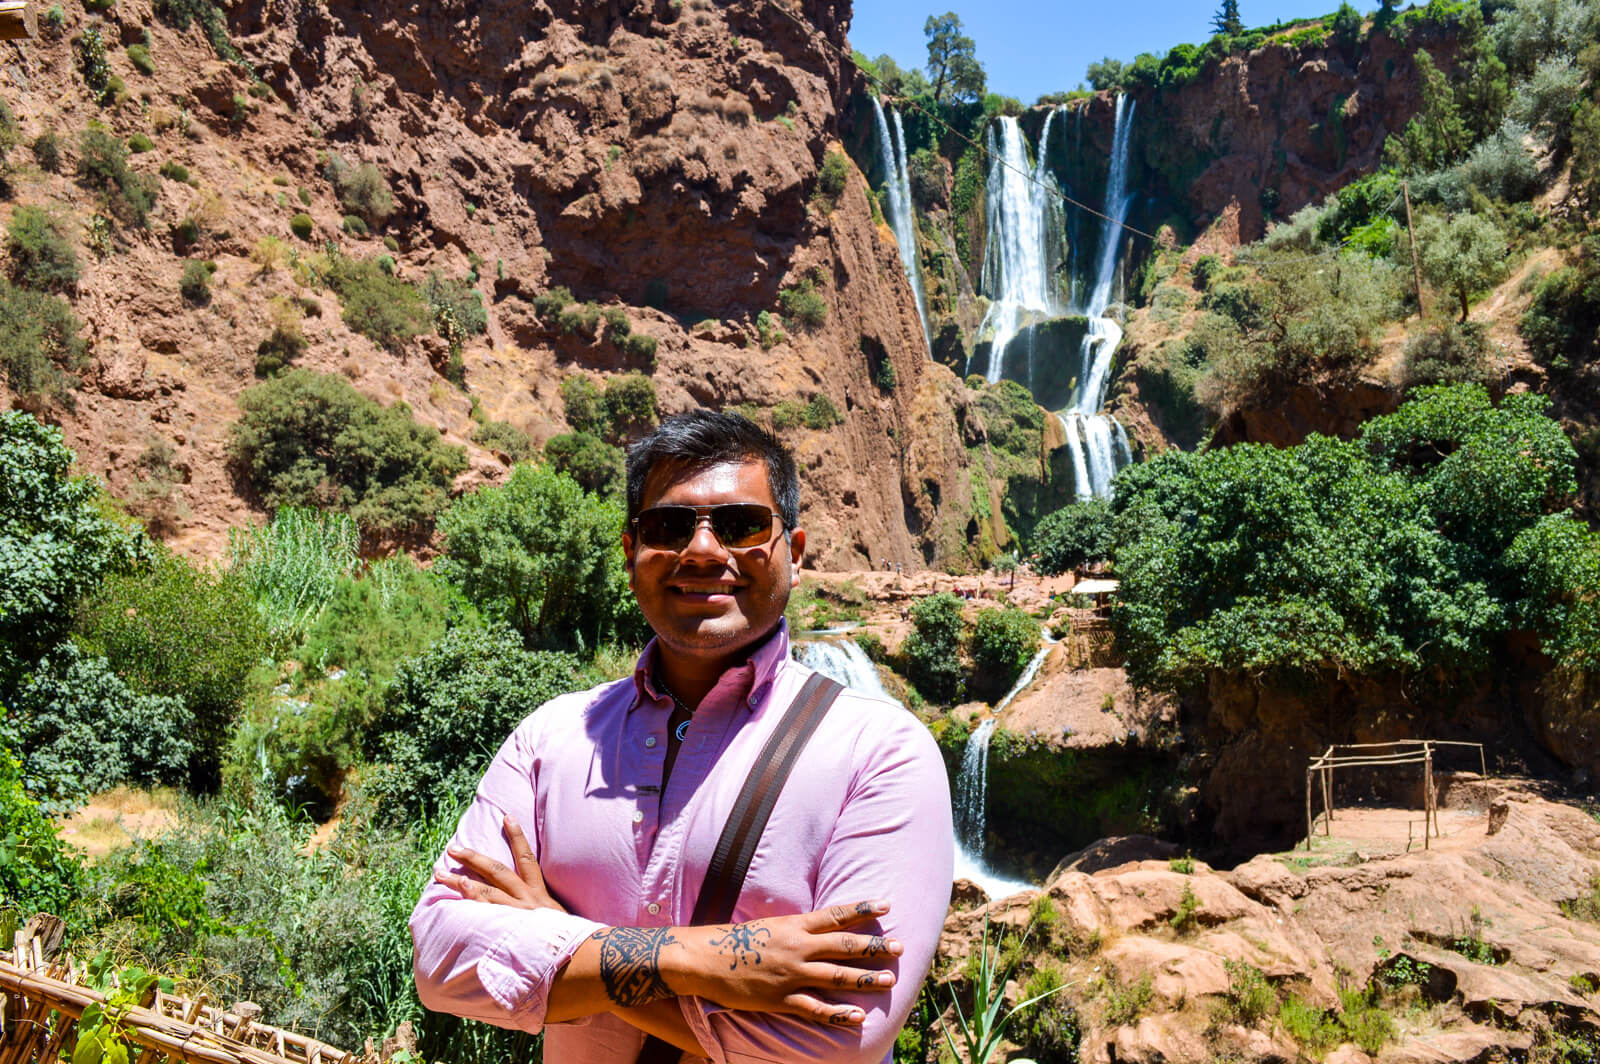 The Man of Wonders at the Ouzoud Waterfalls